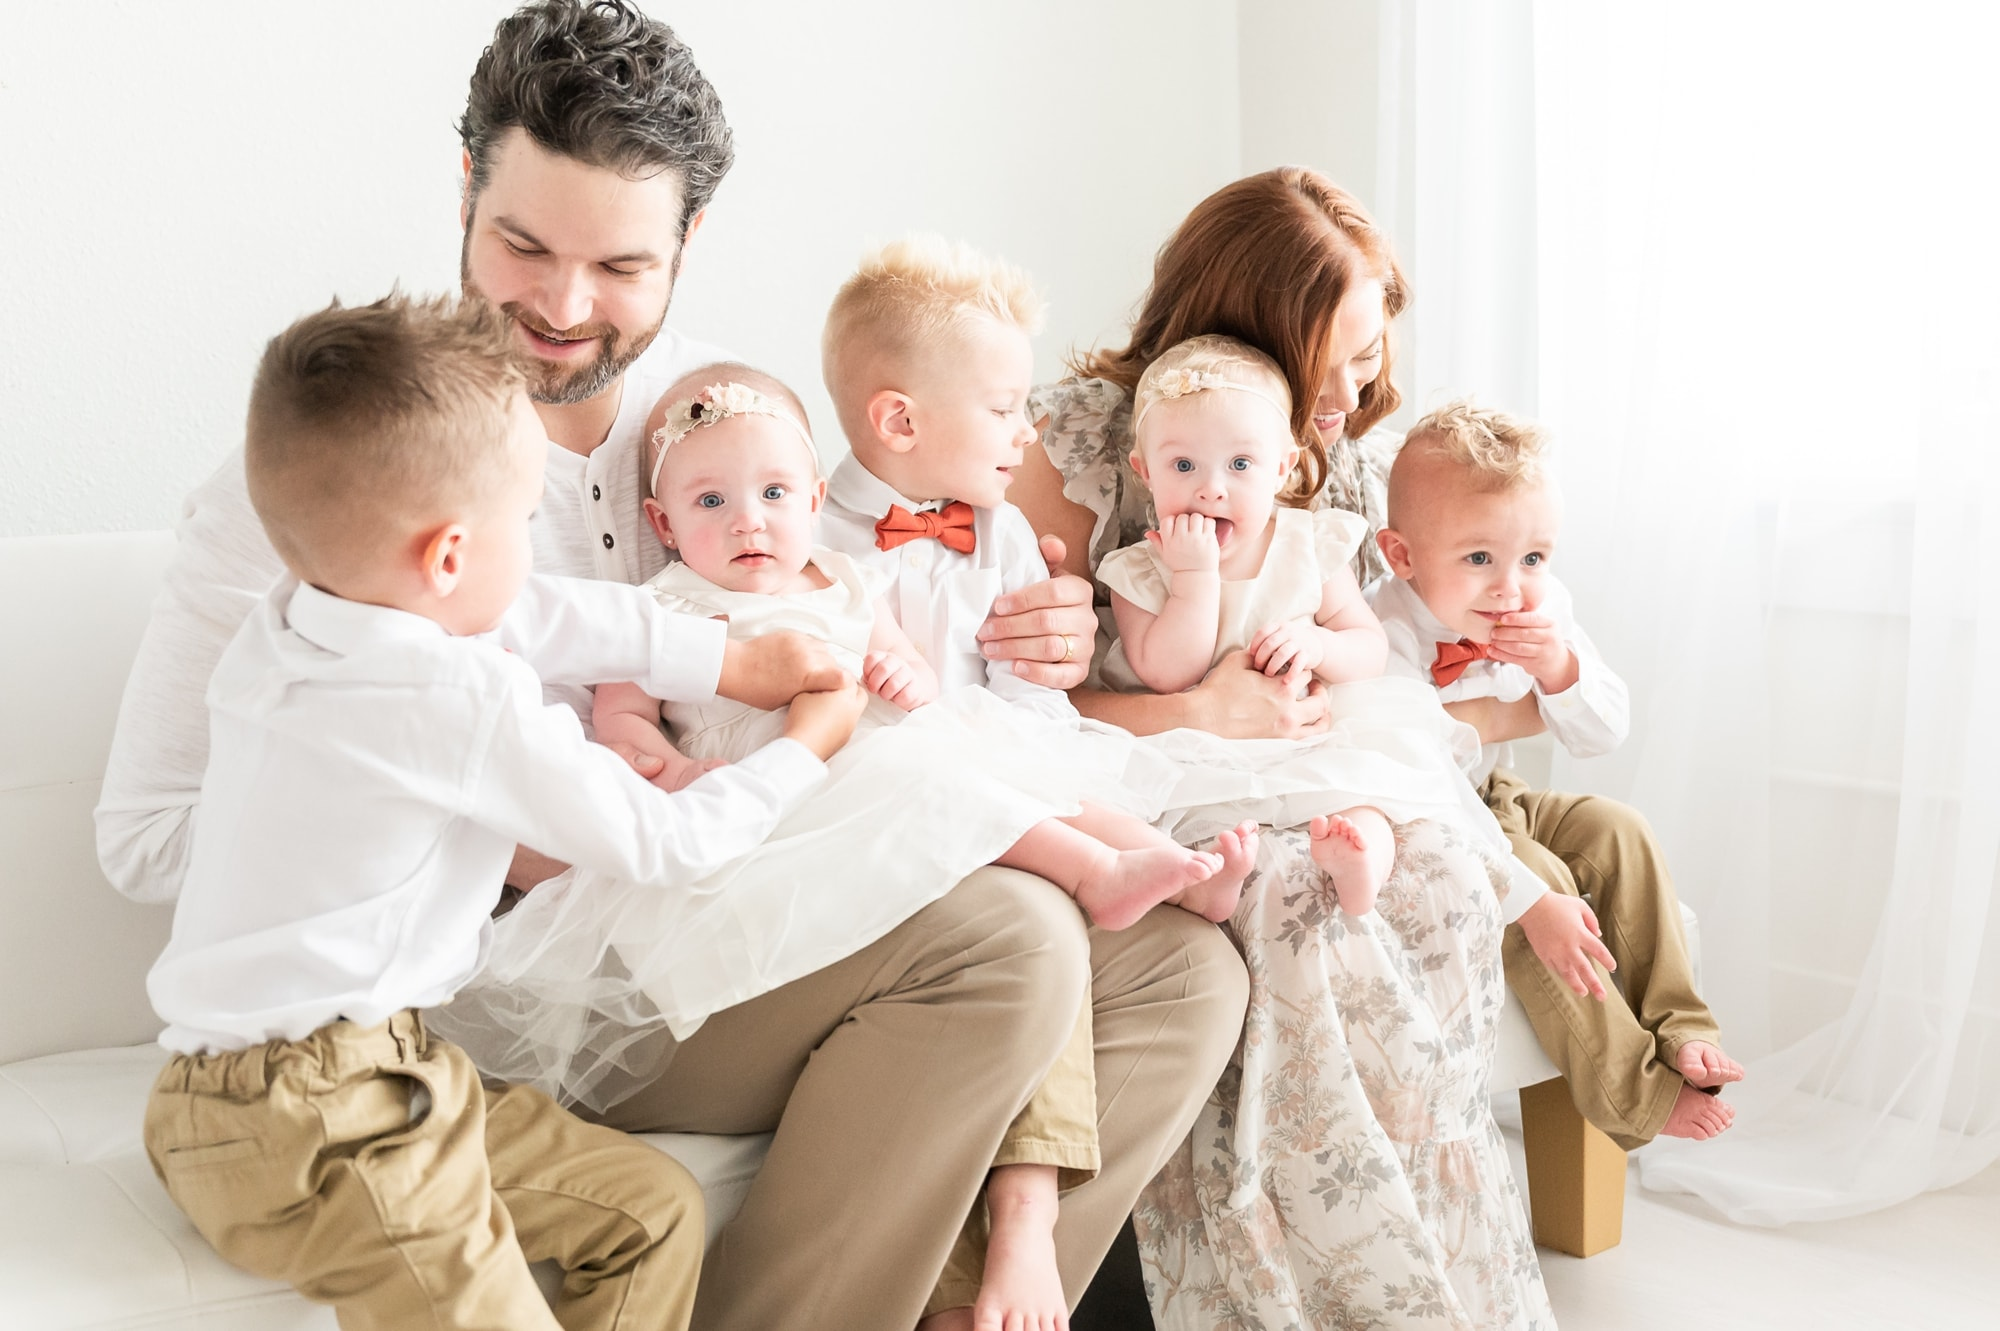 Candid image of parents with five young children in Dallas studio. Photo by Aimee Hamilton Photography.